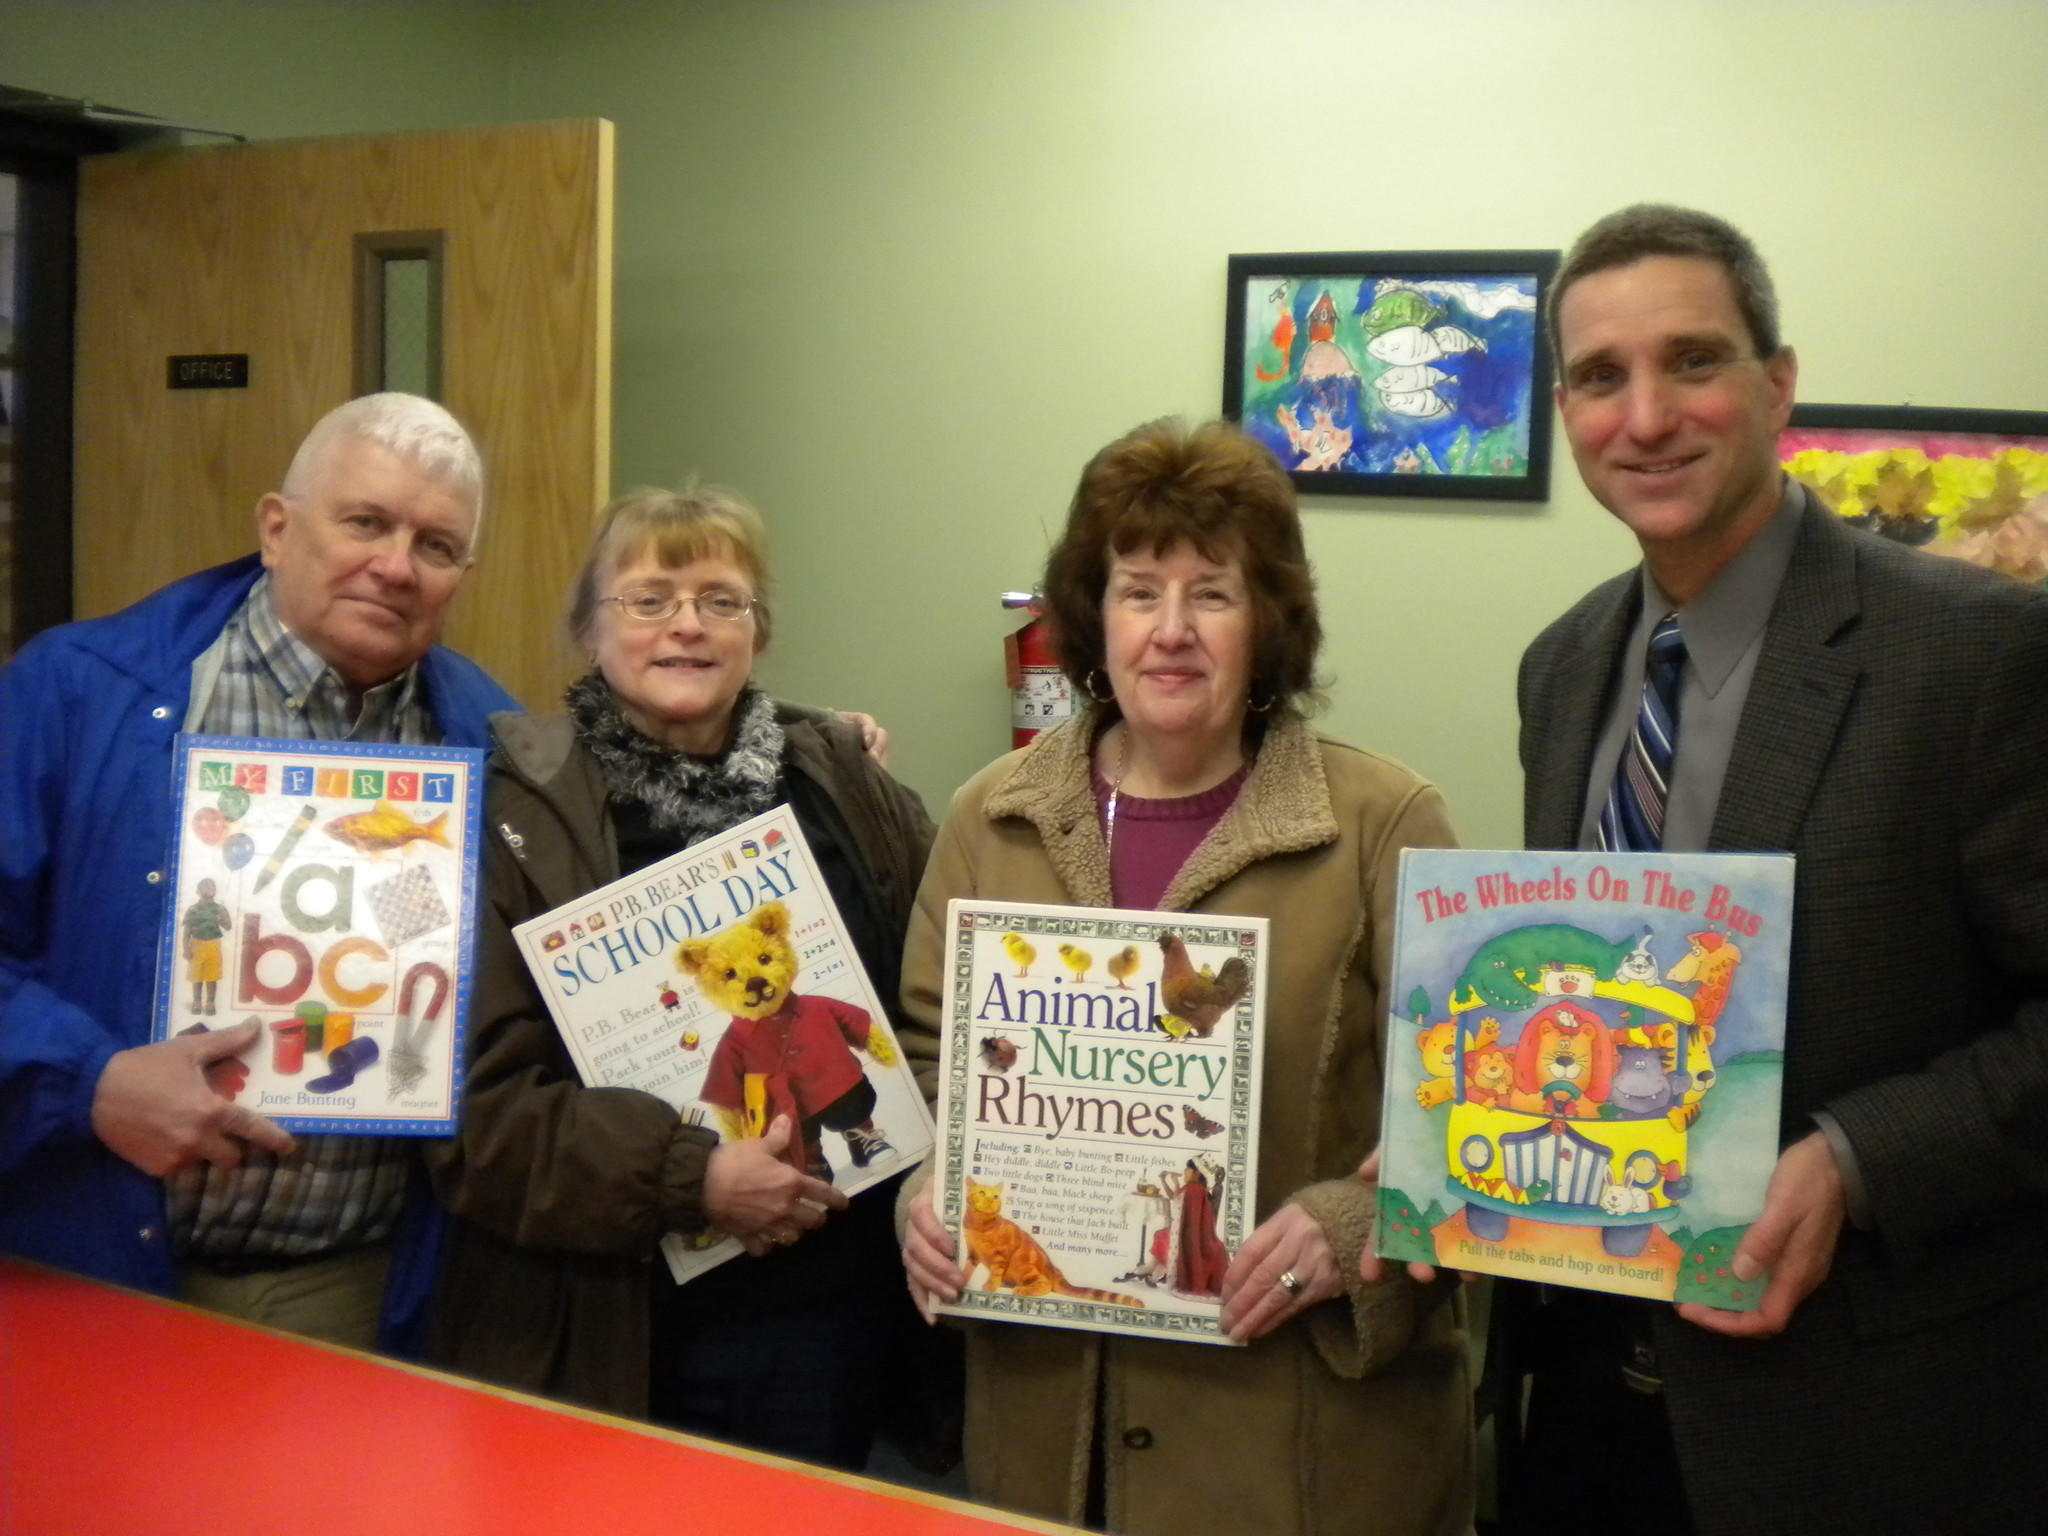 From left to right: Richard Czyz, Mary Sersanti and Sharon Czyz, Bountiful Books co-chairmen, and Troy C. Hopkins, principal, Ashford Elementary School.